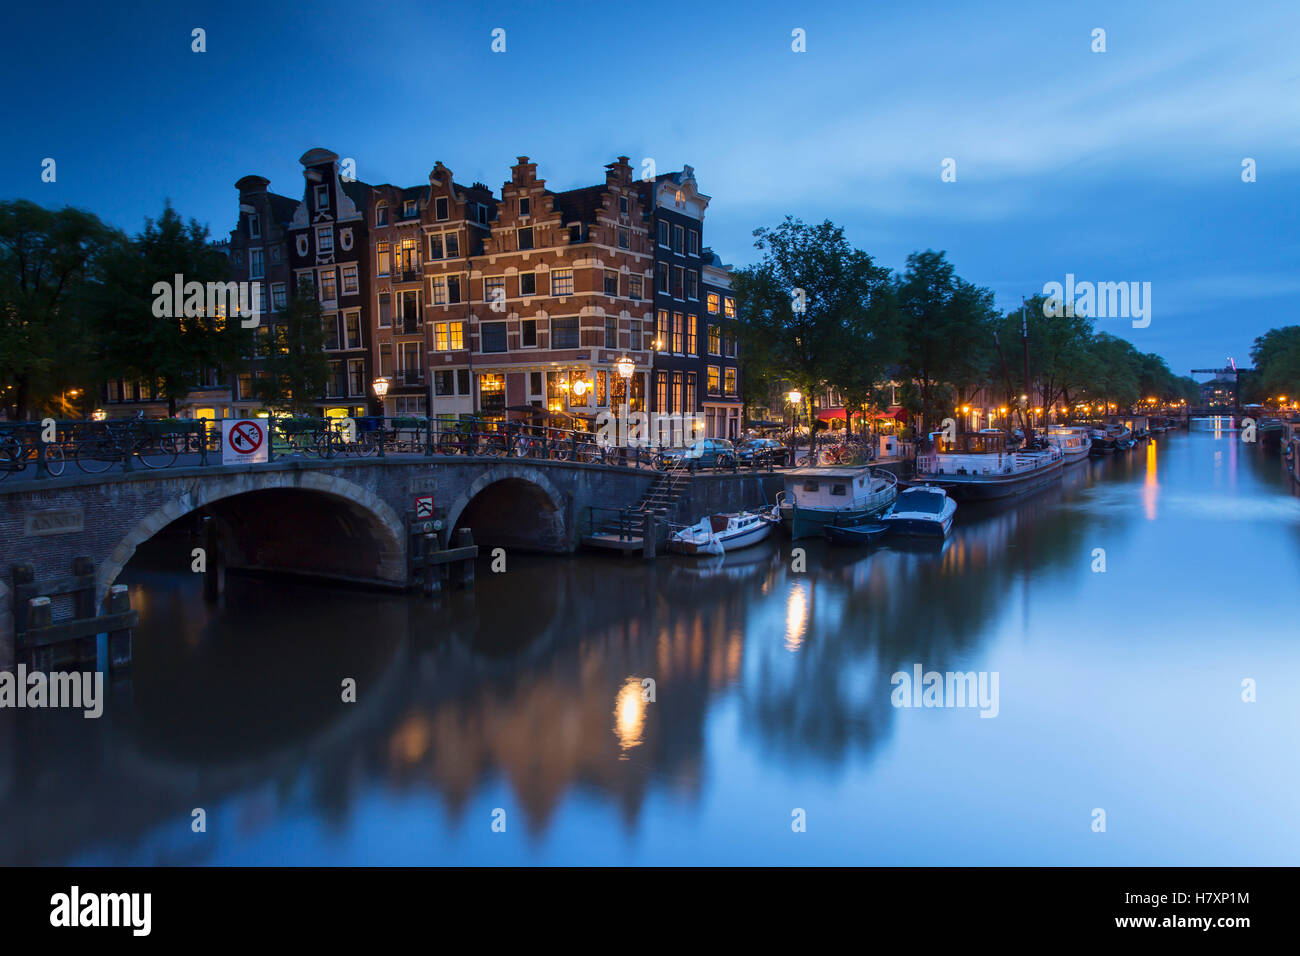 Prinsengracht and Brouwersgracht canals at dusk, Amsterdam, Netherlands Stock Photo